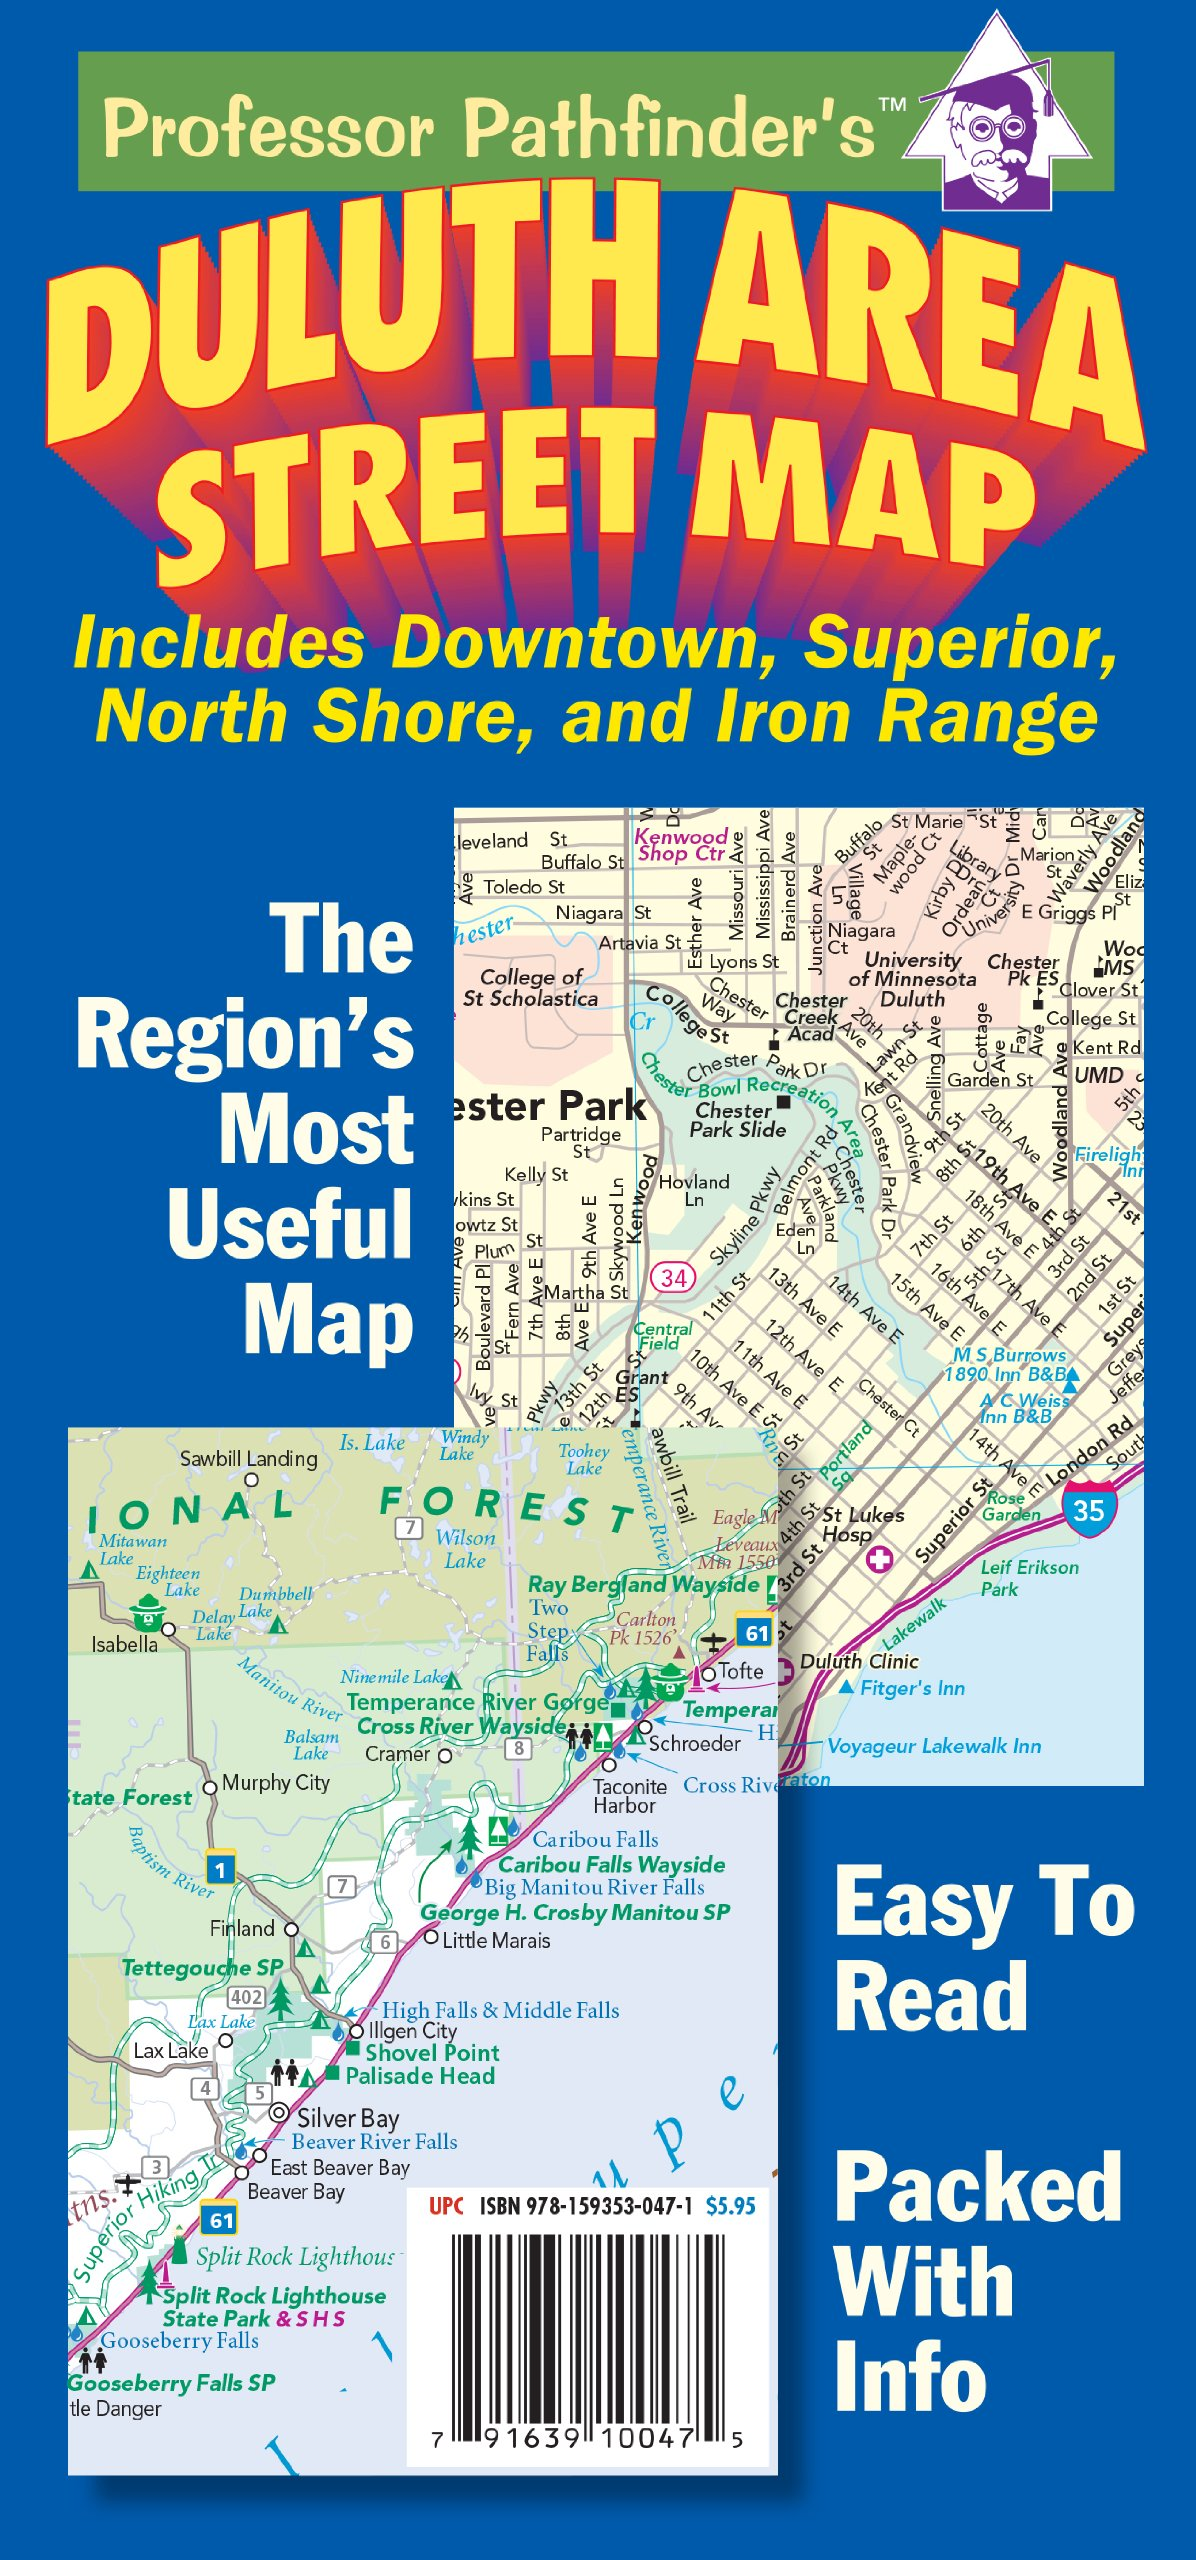 Duluth area street map includes downtown superior north shore duluth area street map includes downtown superior north shore and iron range hedberg maps inc 9781593530471 amazon books fandeluxe Image collections